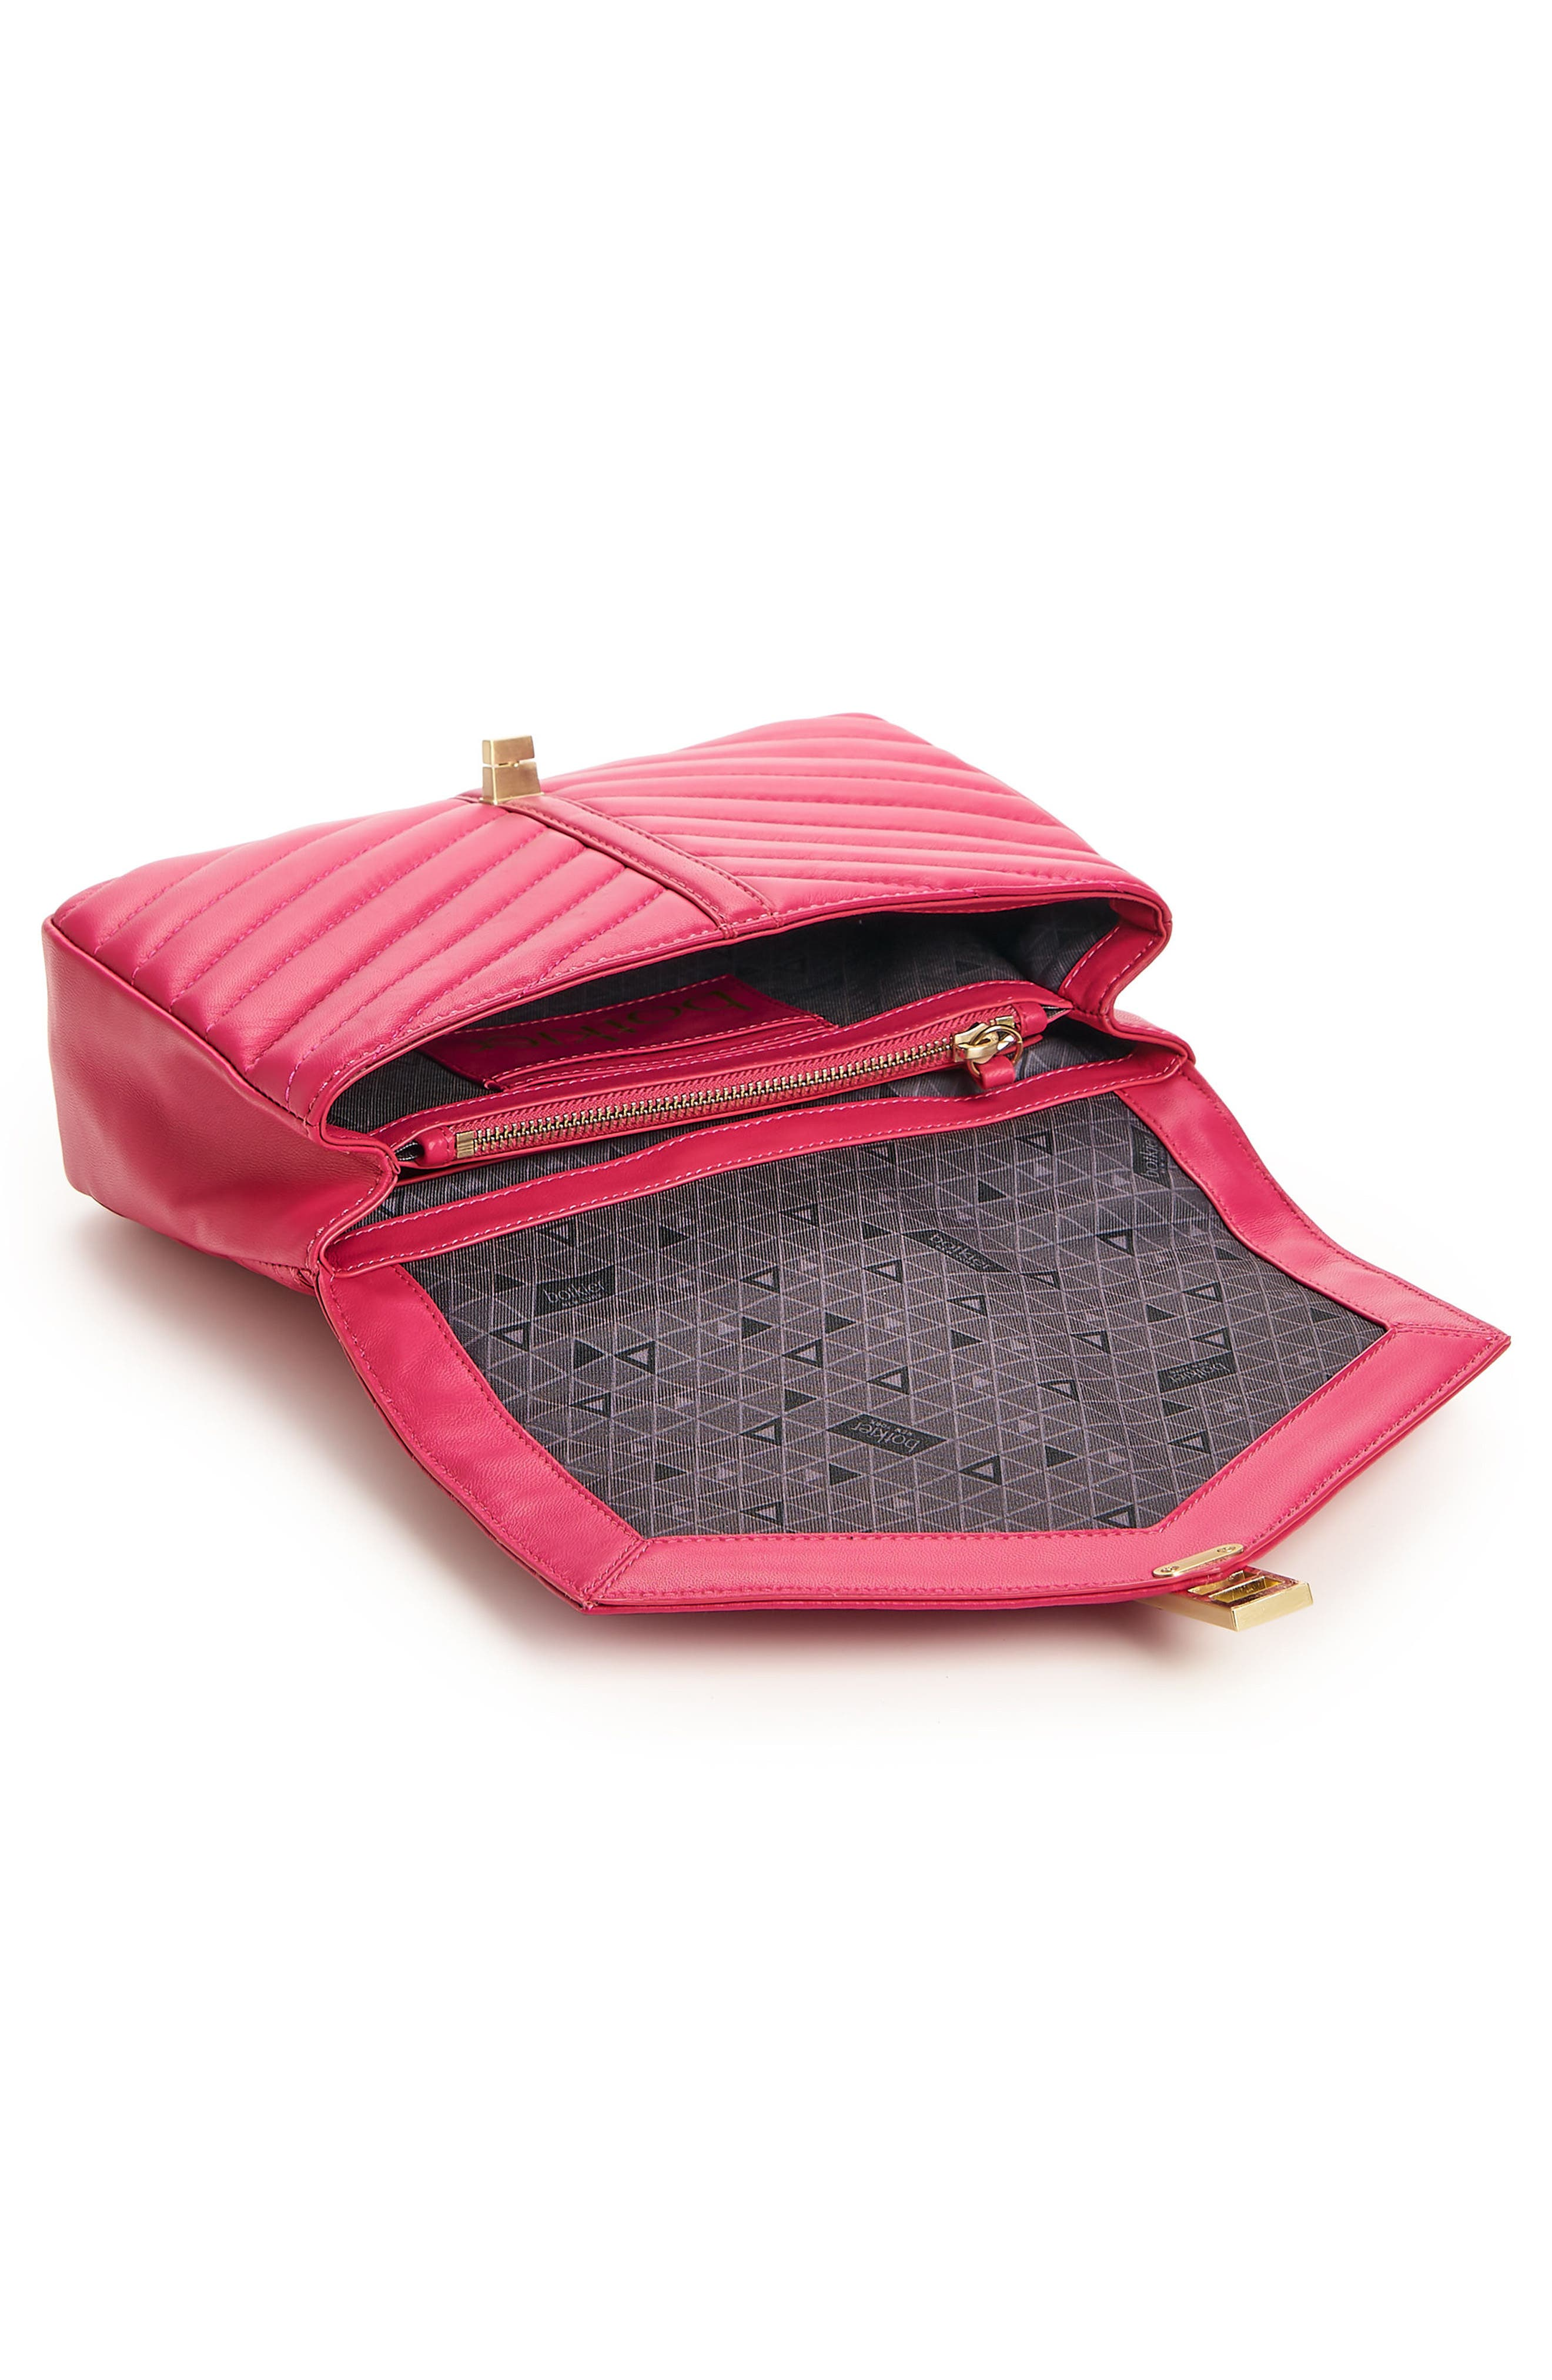 Dakota Quilted Leather Top Handle Bag,                             Alternate thumbnail 3, color,                             Pink